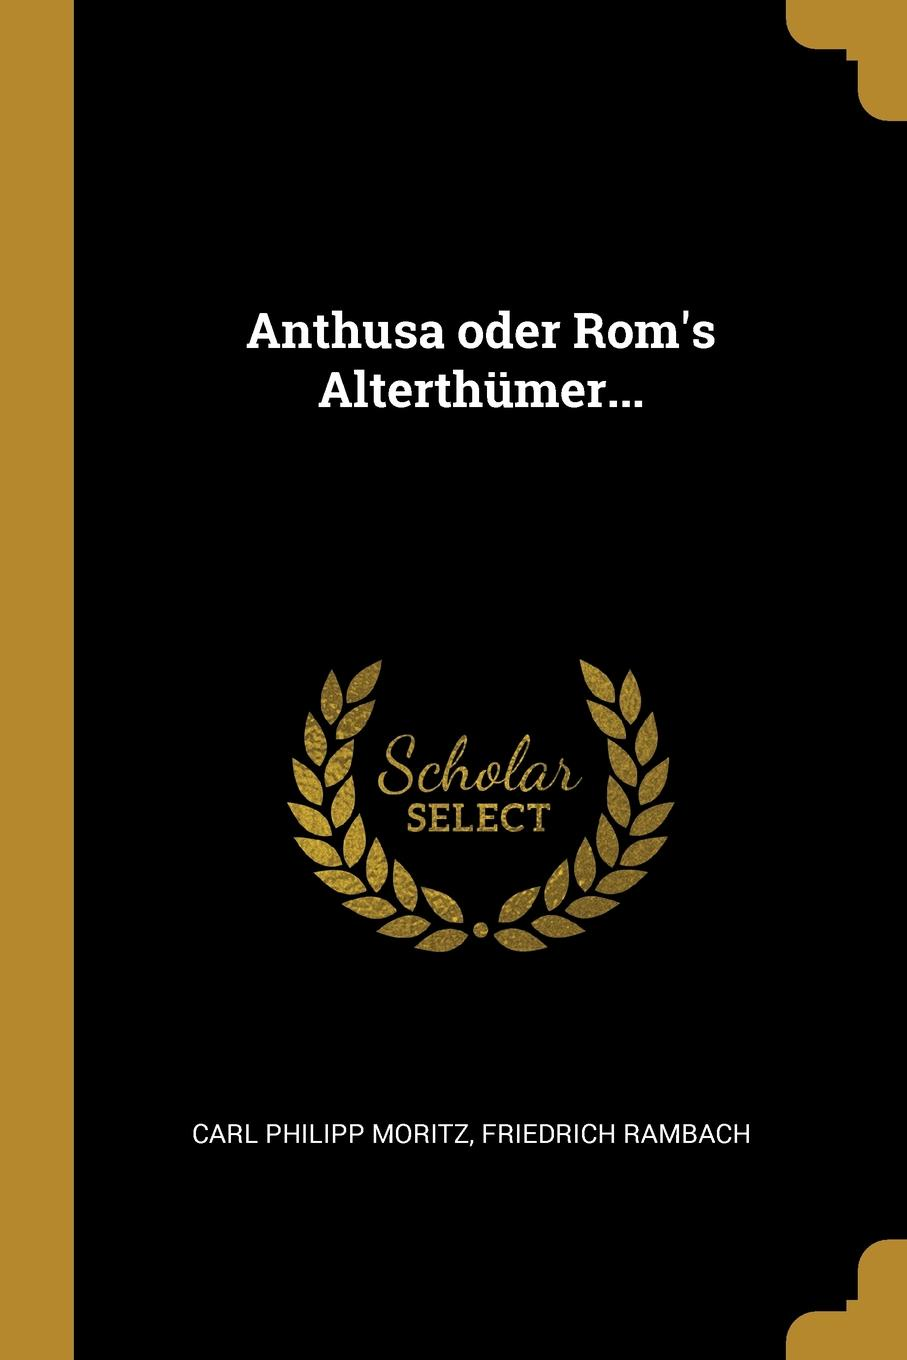 Carl Philipp Moritz, Friedrich Rambach Anthusa oder Rom.s Alterthumer...